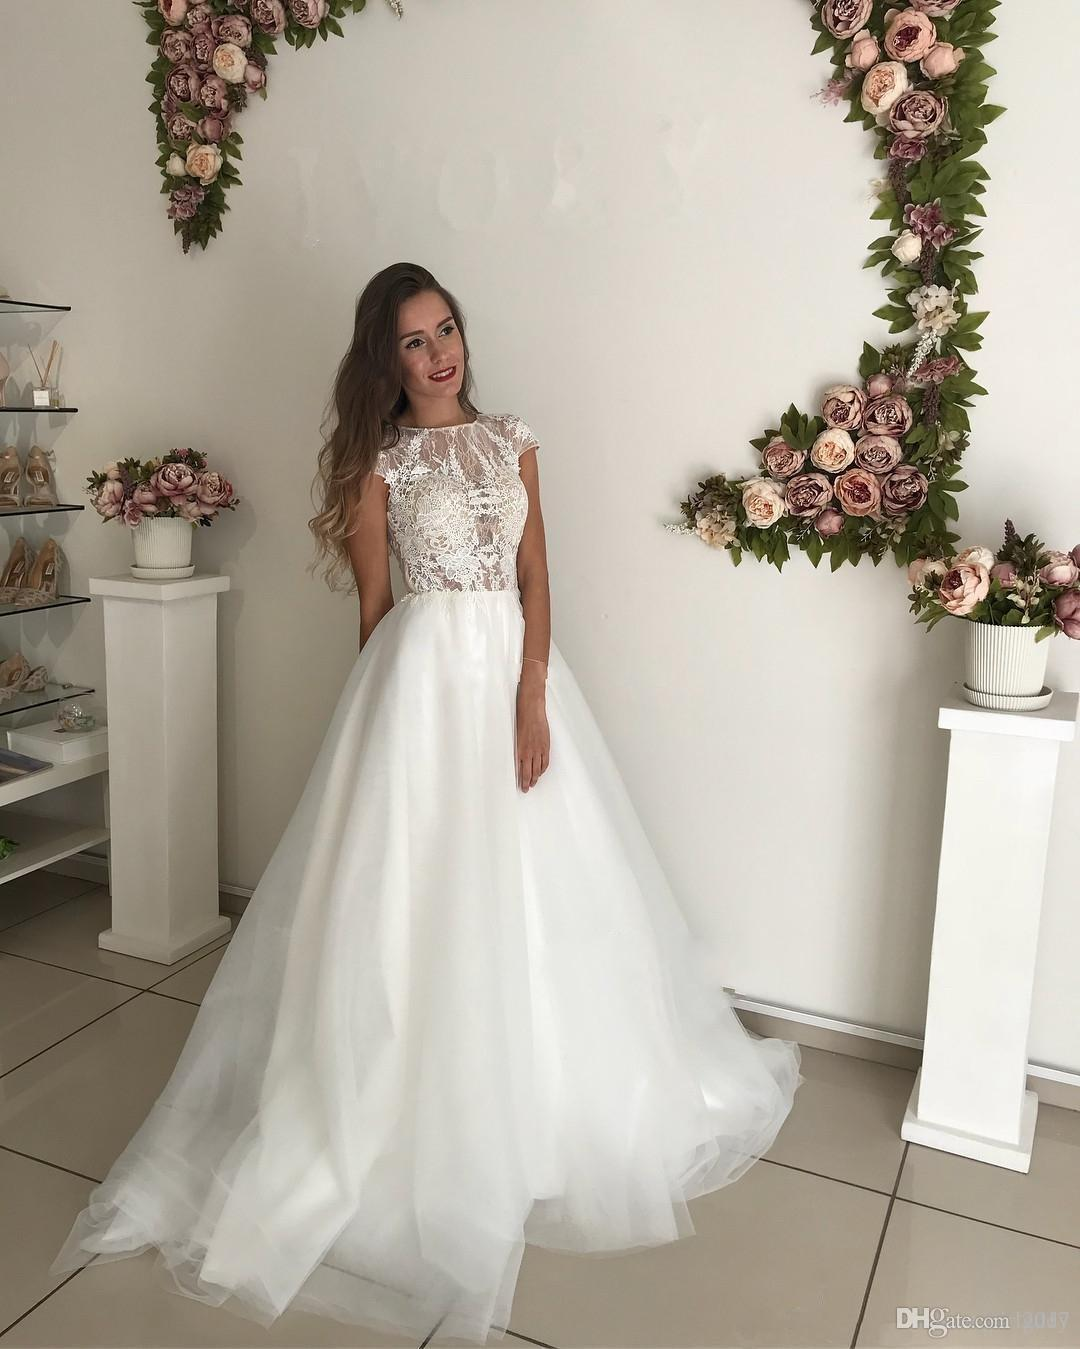 Fairy Lace Tulle Beach Wedding Dresses with Short Sleeve Modest Jewel Neck Sweep Train Summer Holiday Informal Bridal Gown